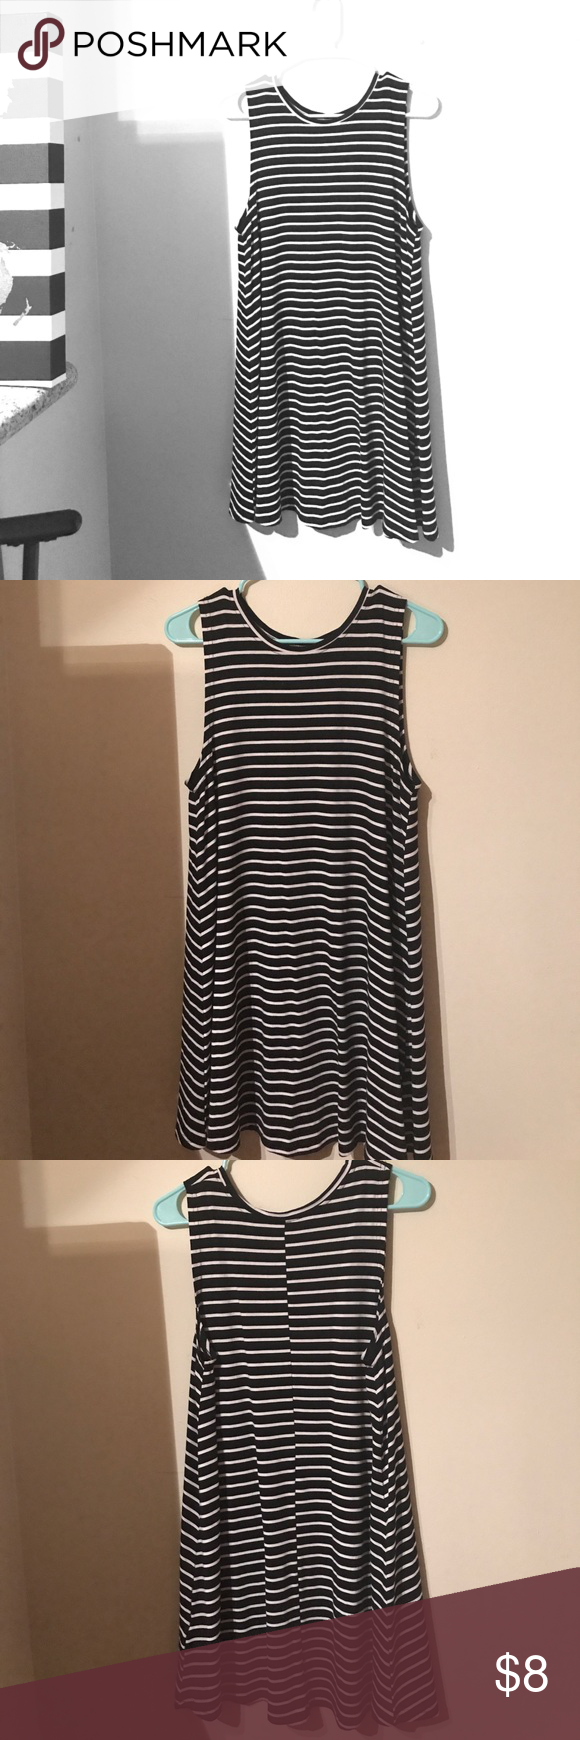 Black and white flowy dress white flowy dress black and customer